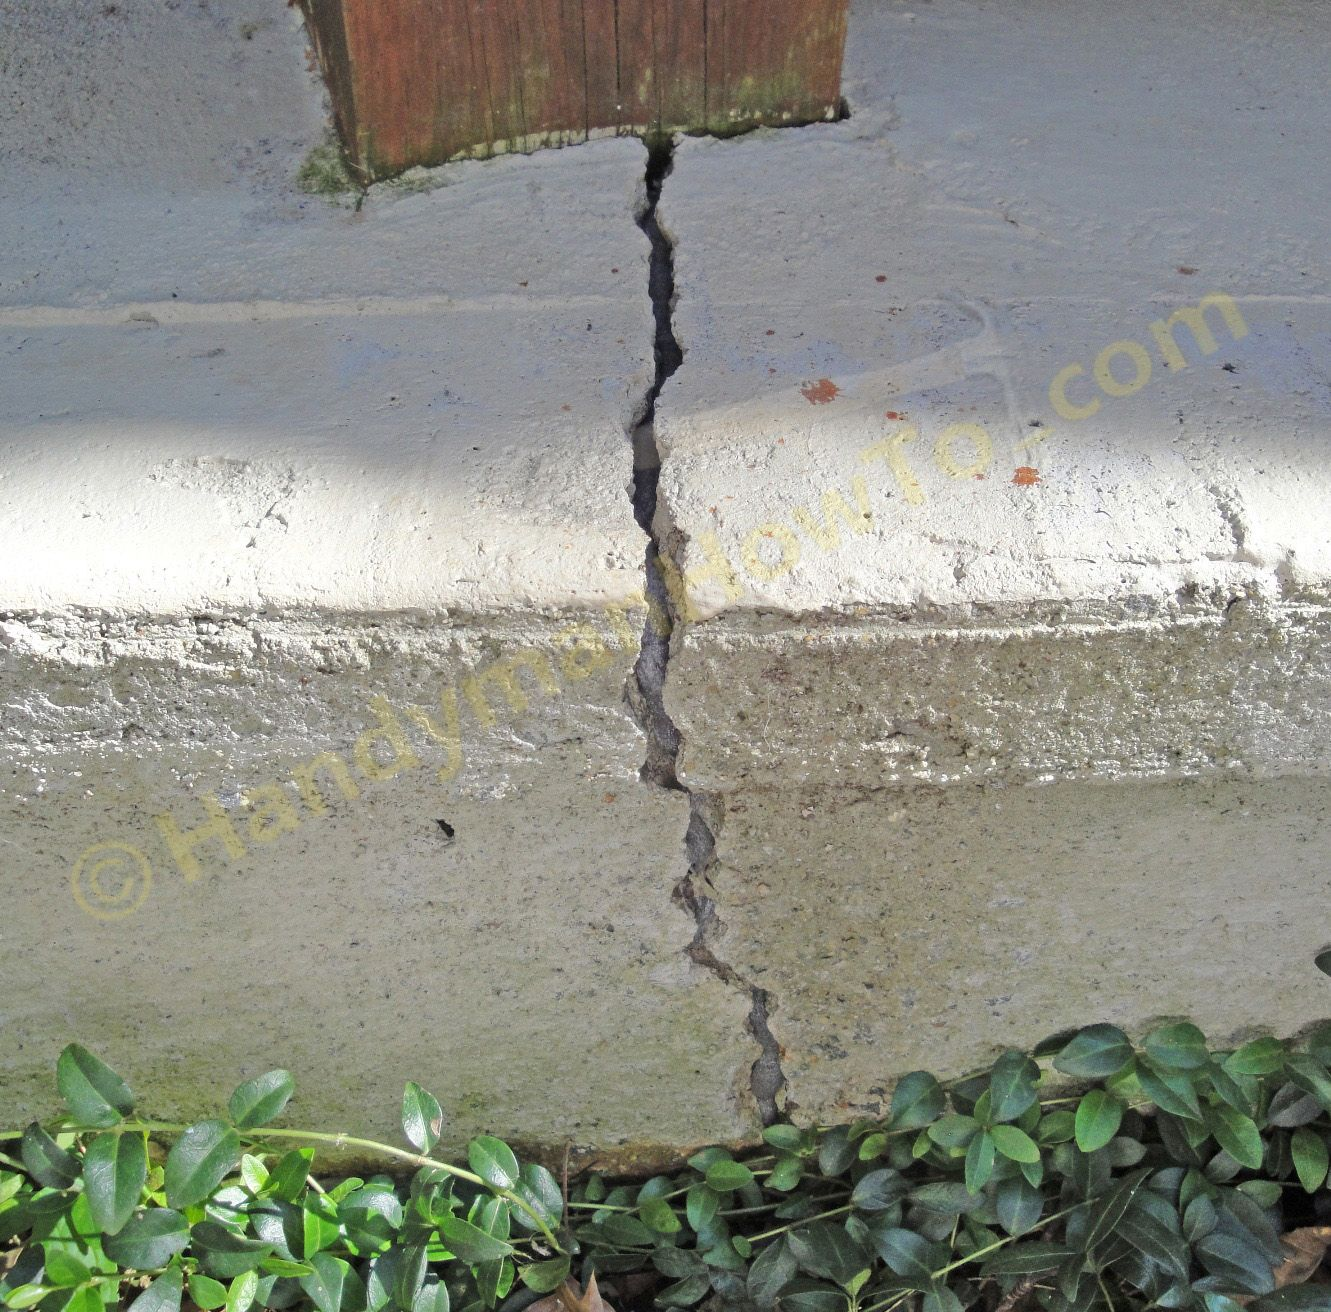 How To Repair A Cracked Concrete Patio Part 2 Concrete Patio Repair Cracked Concrete Concrete